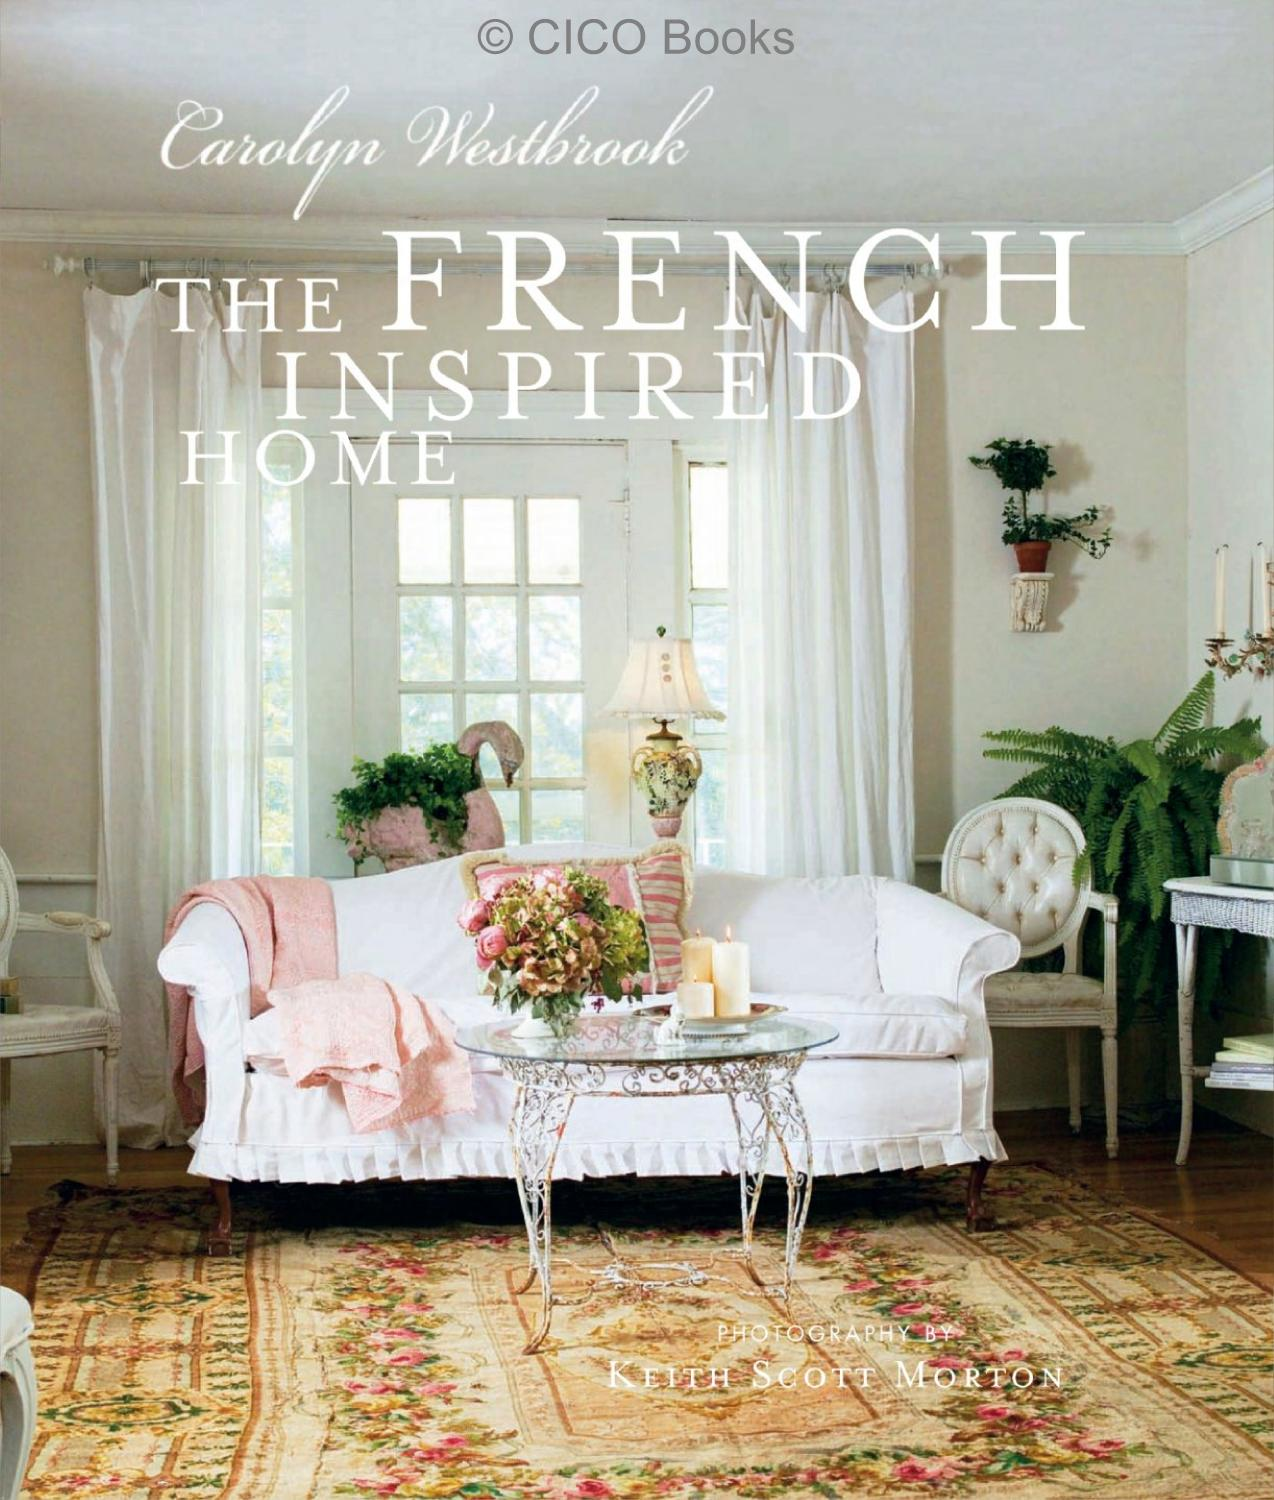 French inspired home by carolyn westbrook by cico books for 120 broadway 5th floor new york ny 10271